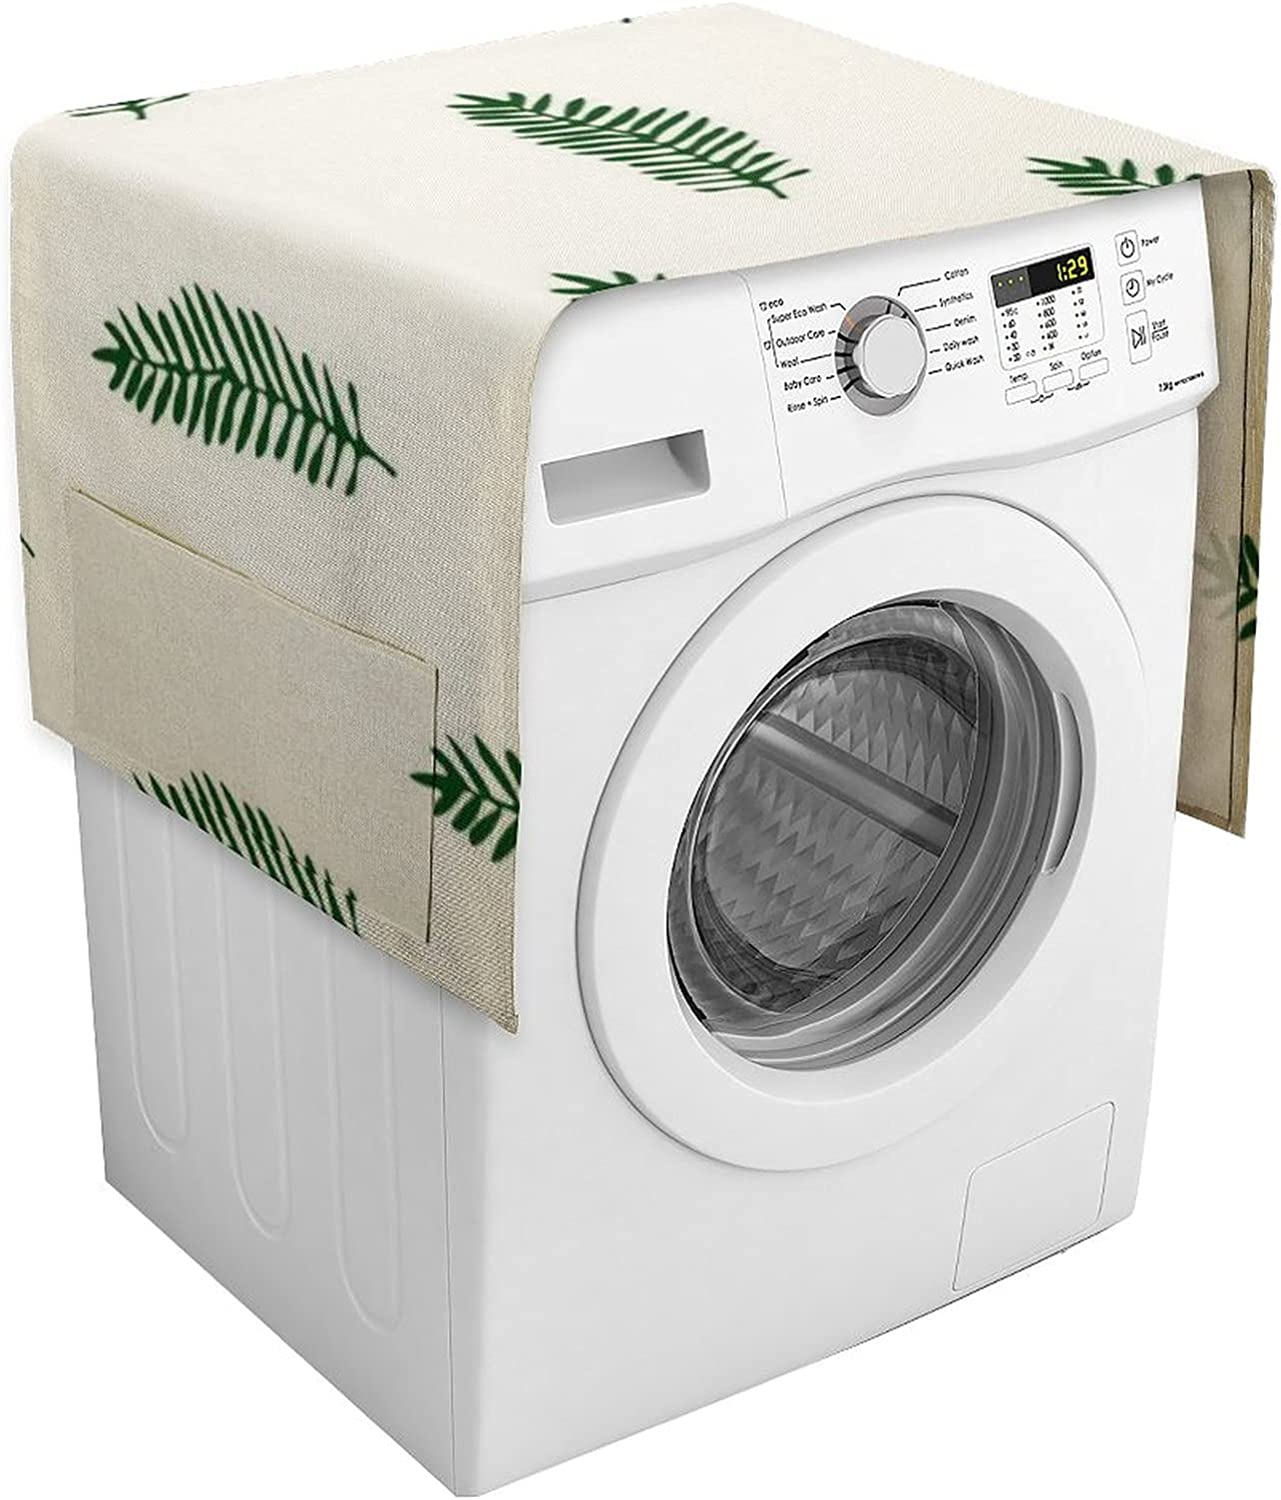 Multi-Purpose Washing Machine NEW Covers Washer Factory outlet Protector Appliance